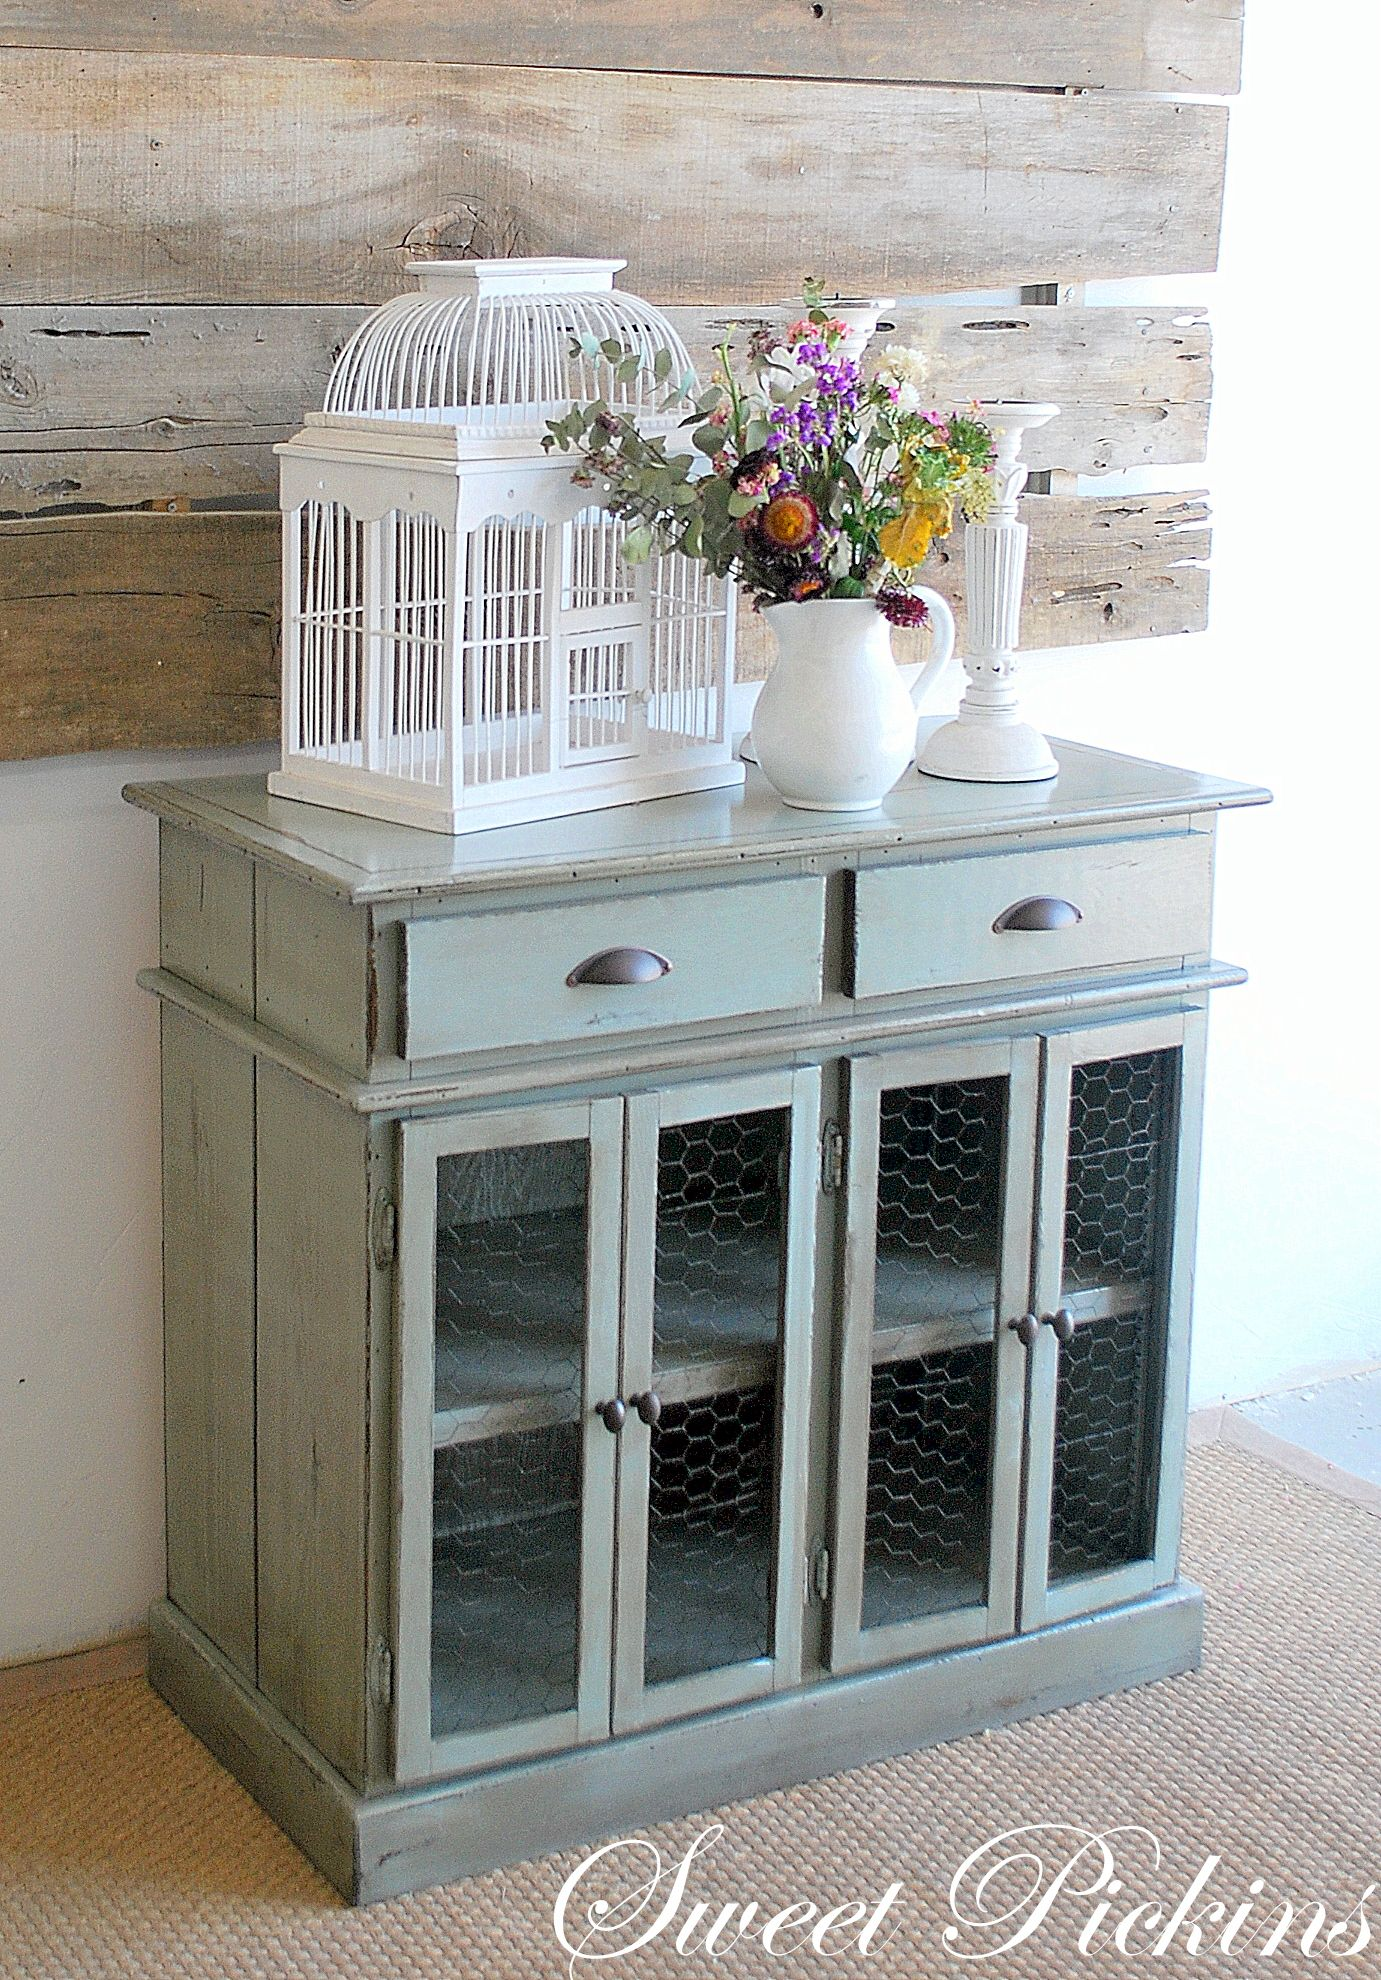 love this cabinet | Decorating | Pinterest | Chicken wire, Doors and ...